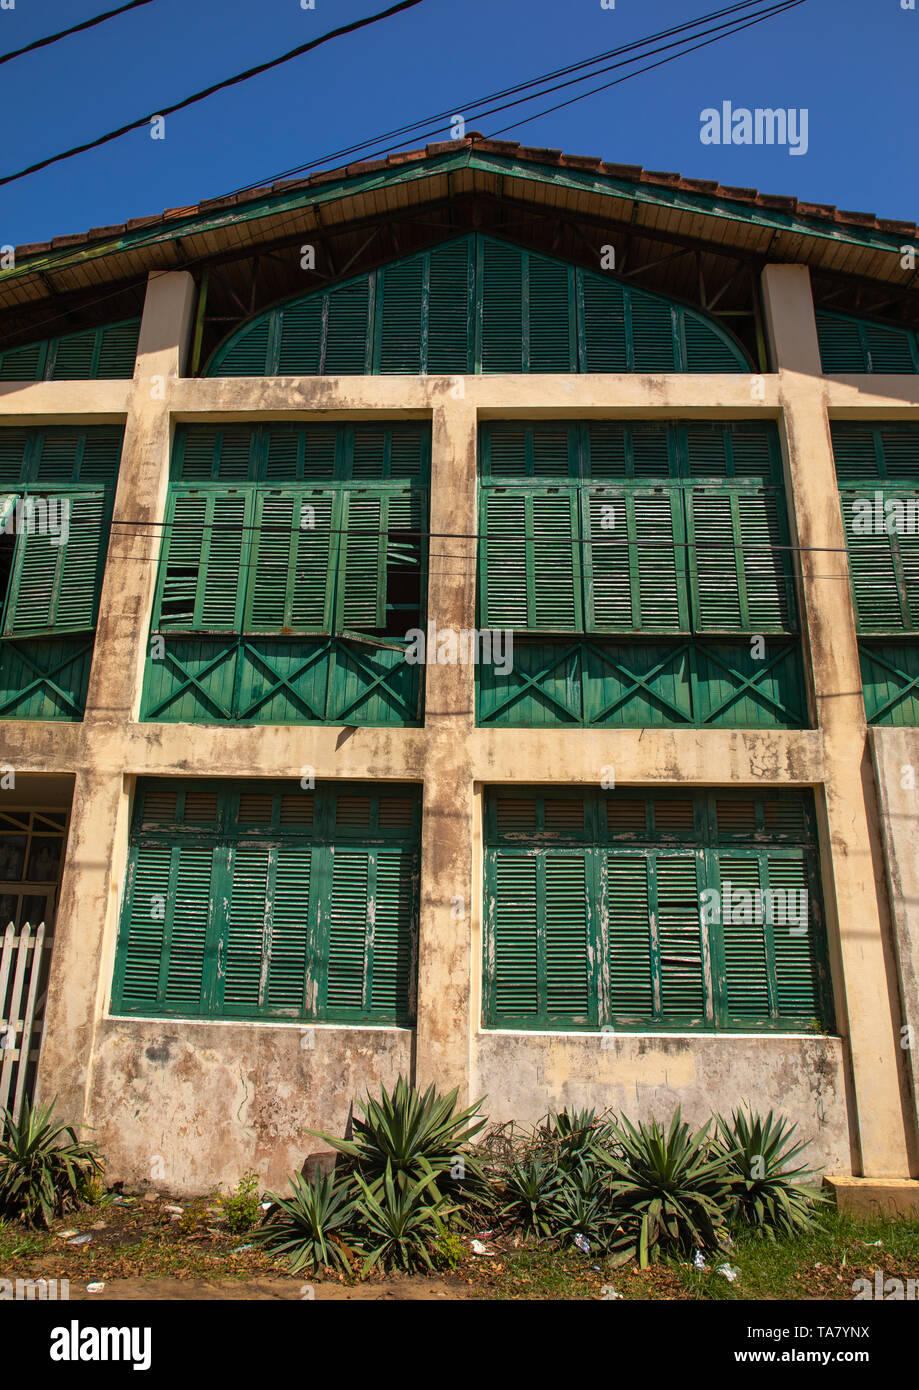 Old french colonial building formerly the customs house in the UNESCO world heritage area, Sud-Comoé, Grand-Bassam, Ivory Coast Stock Photo